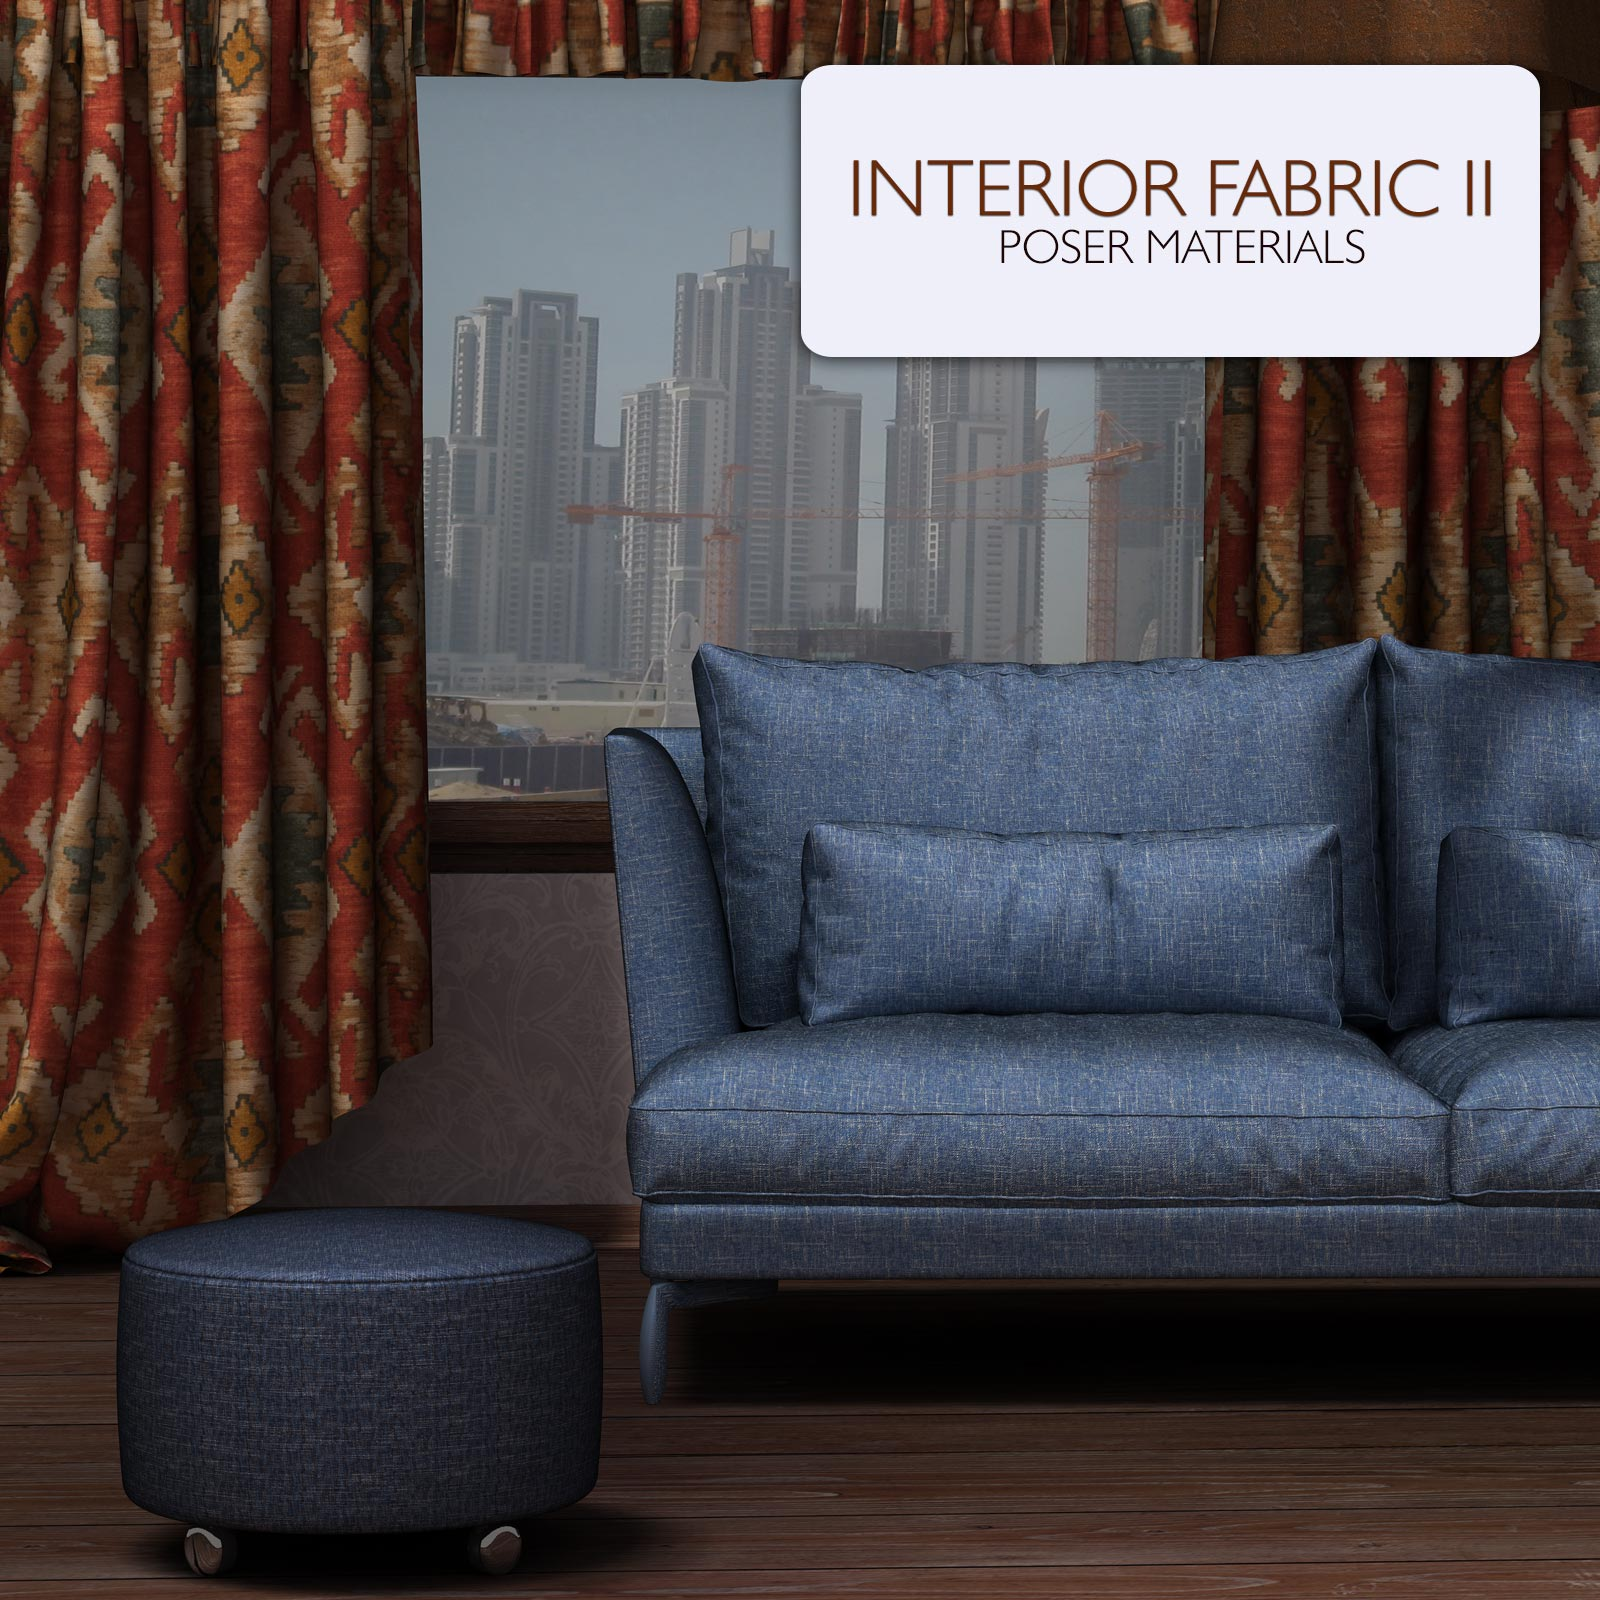 Interior Fabric II :: Poser Materials